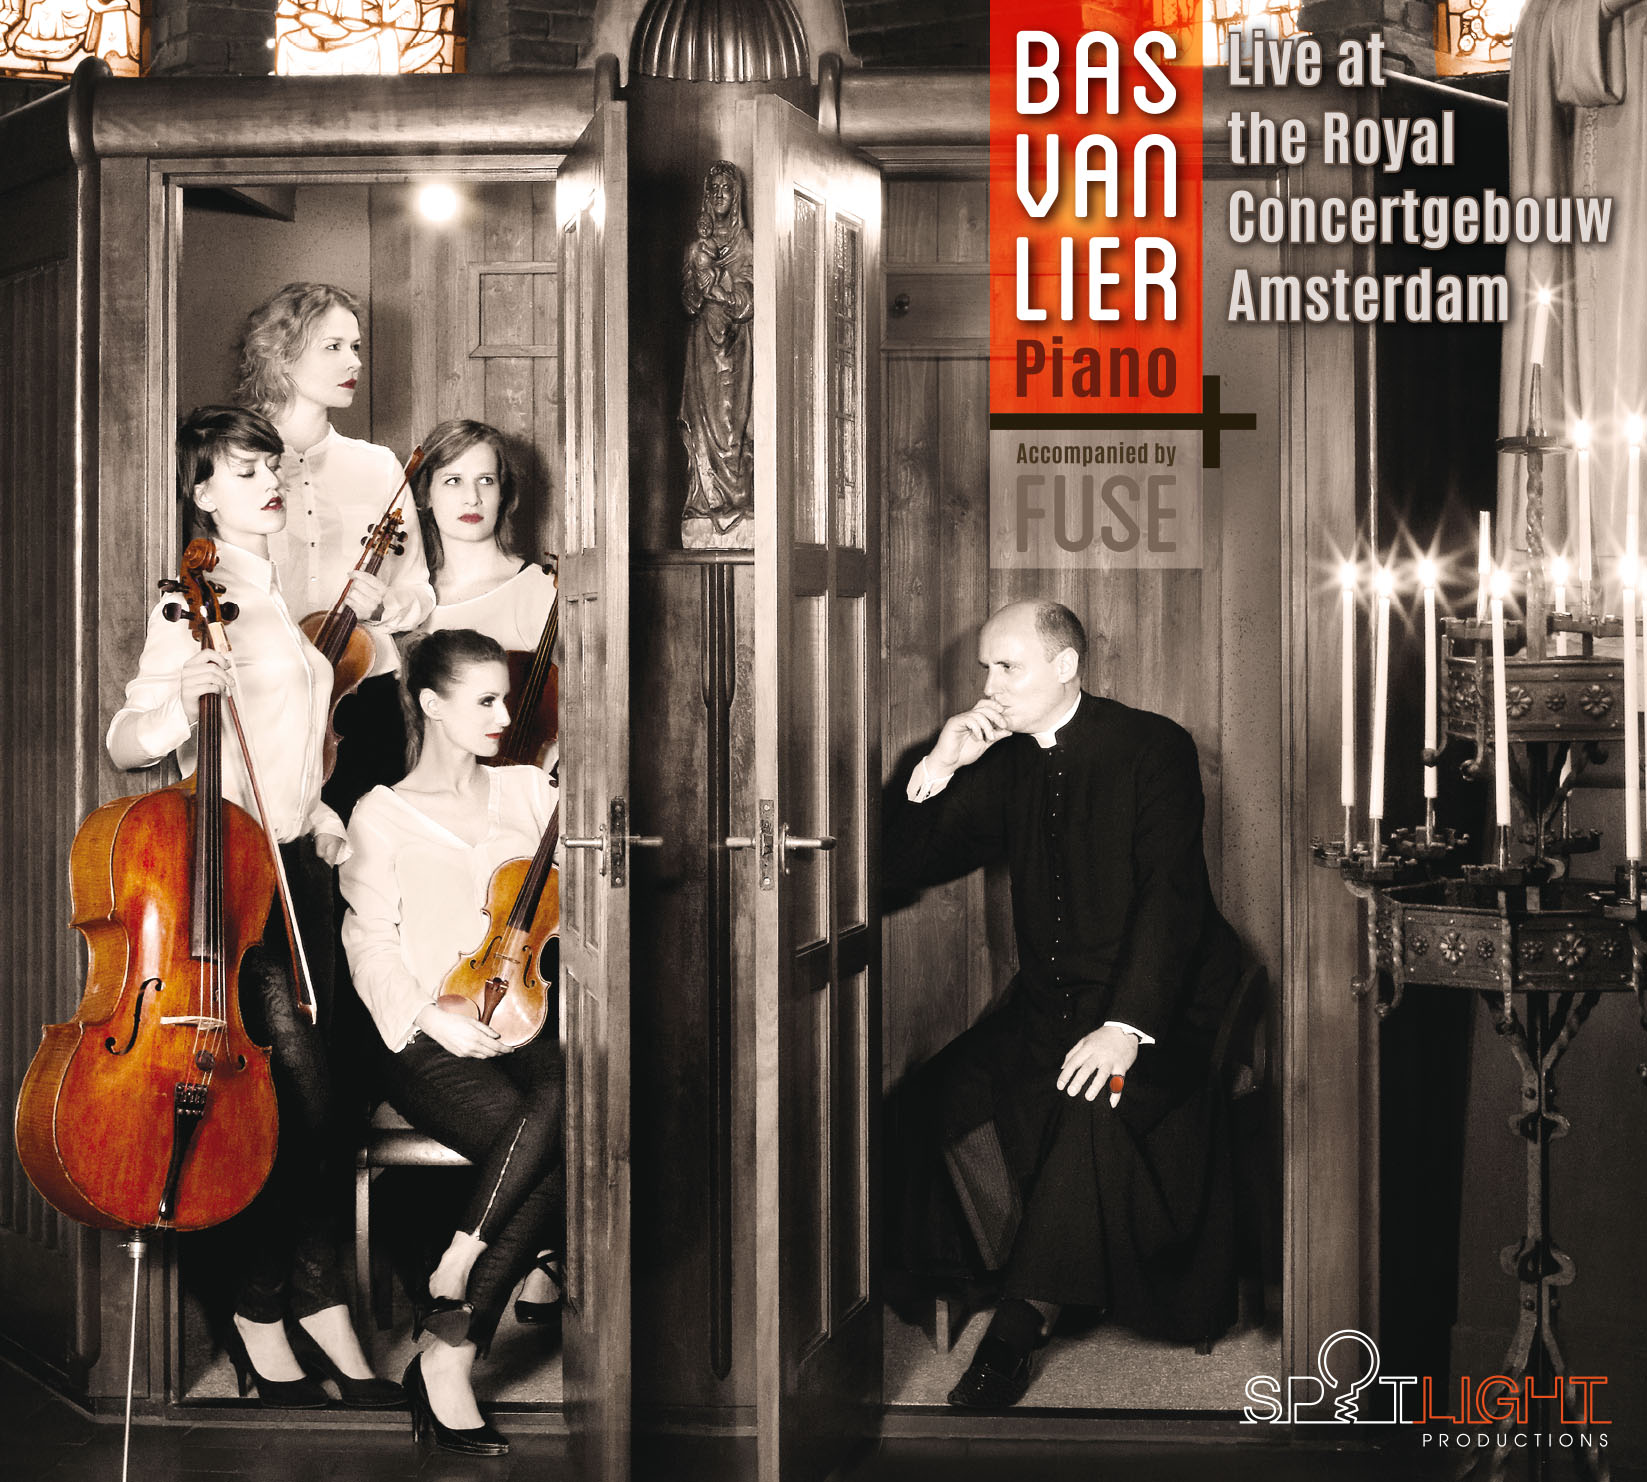 Cover-Bas+-Fuse